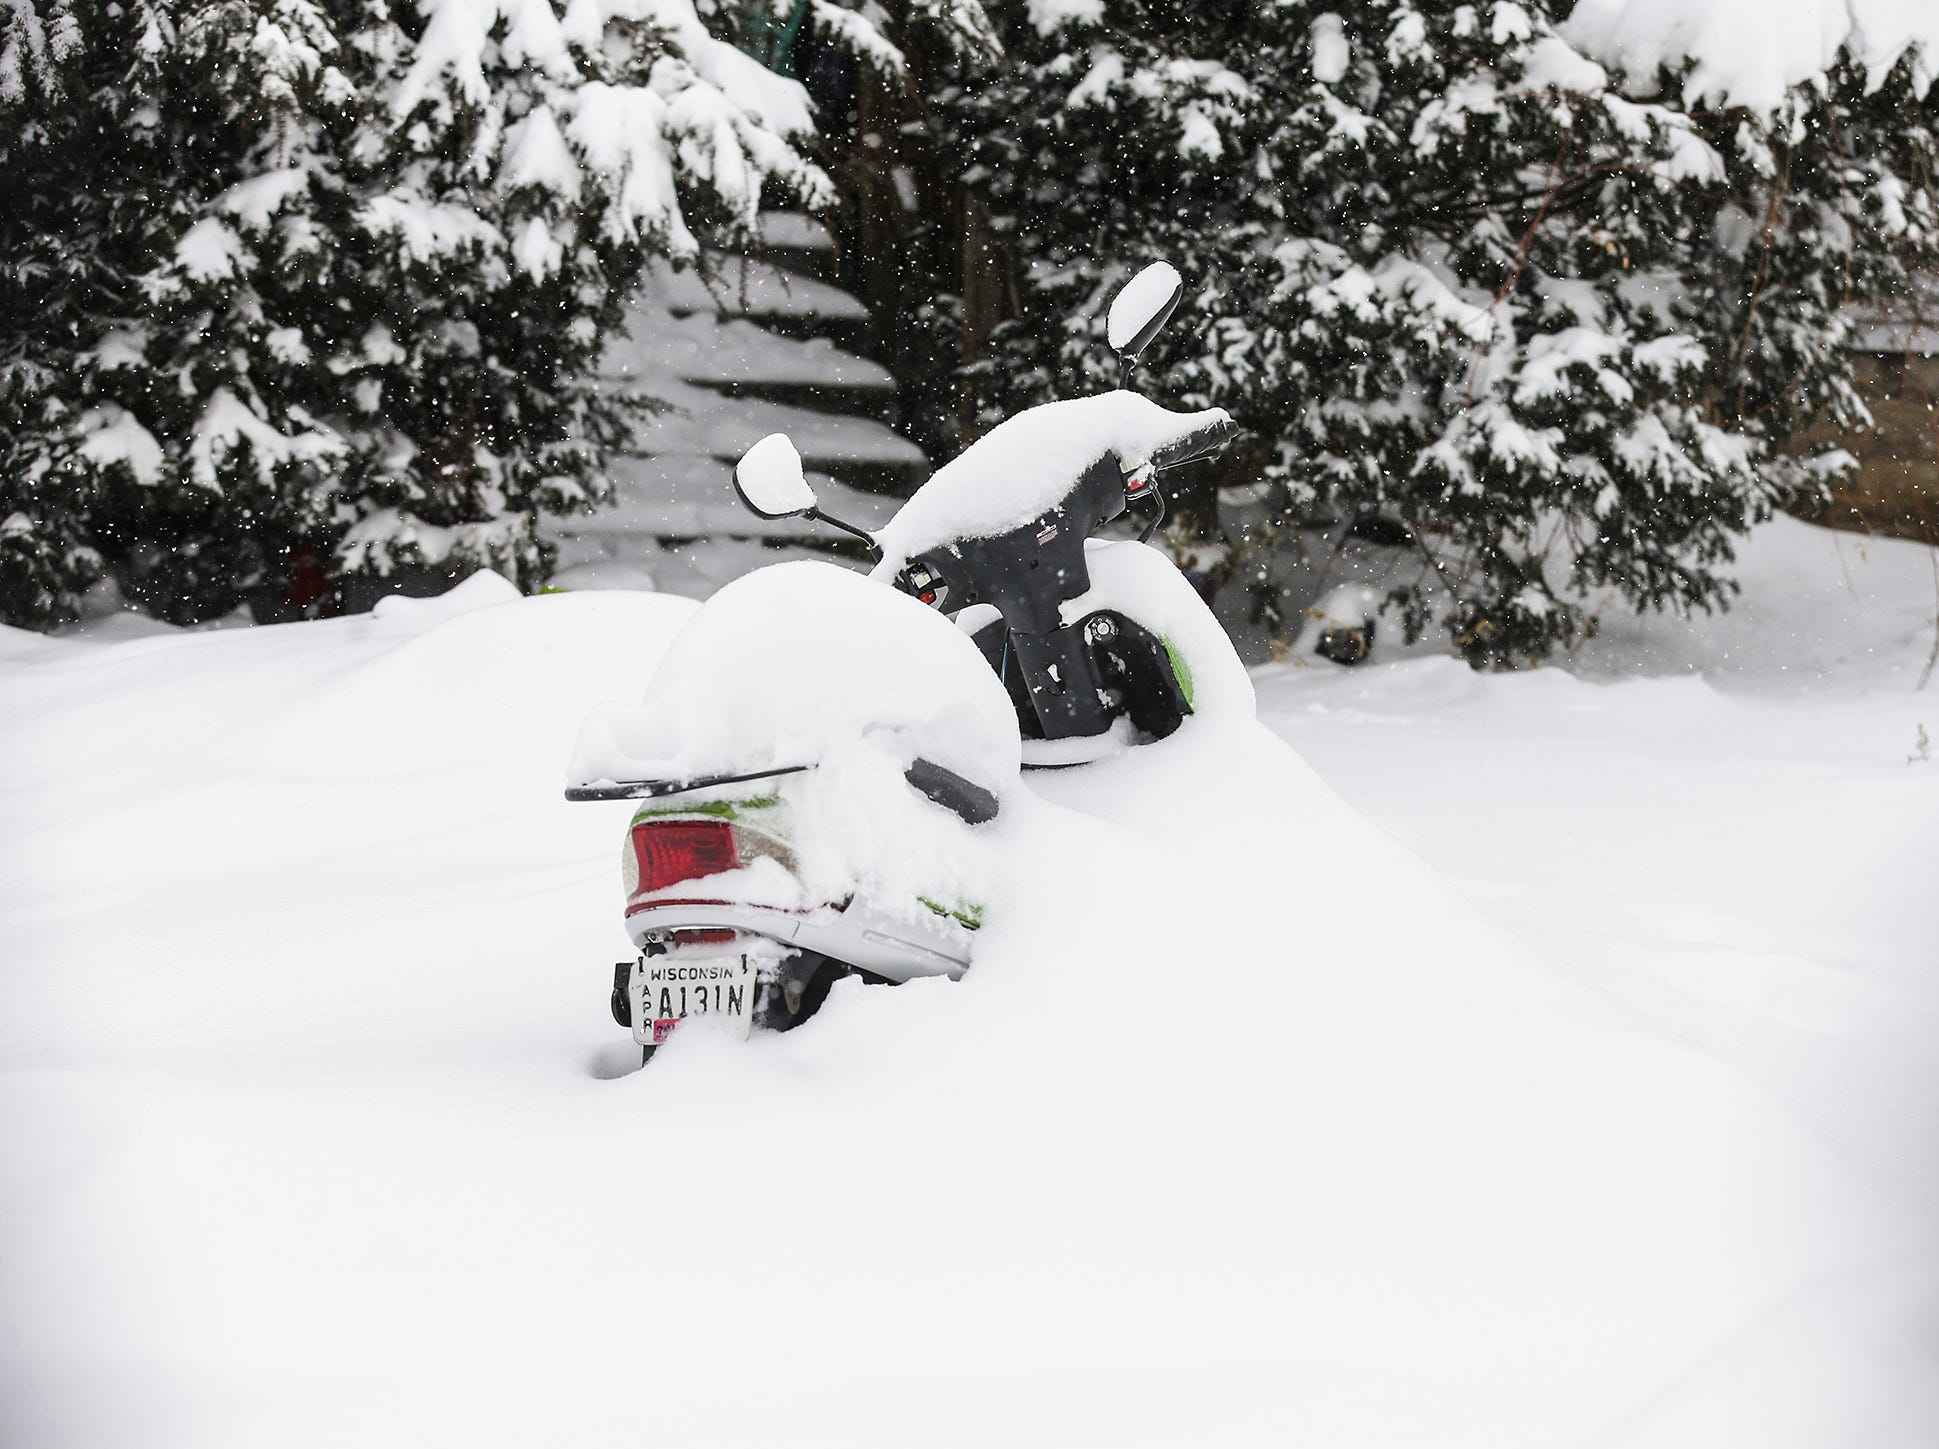 A motor bike sits burried in snow Monday, Jan. 28, 2019, in Fond du Lac, Wisconsin during a snow storm that hampered travel and closed businesses and schools in the Fond du Lac area. This was the Fond du Lac area's second snow storm in five days.